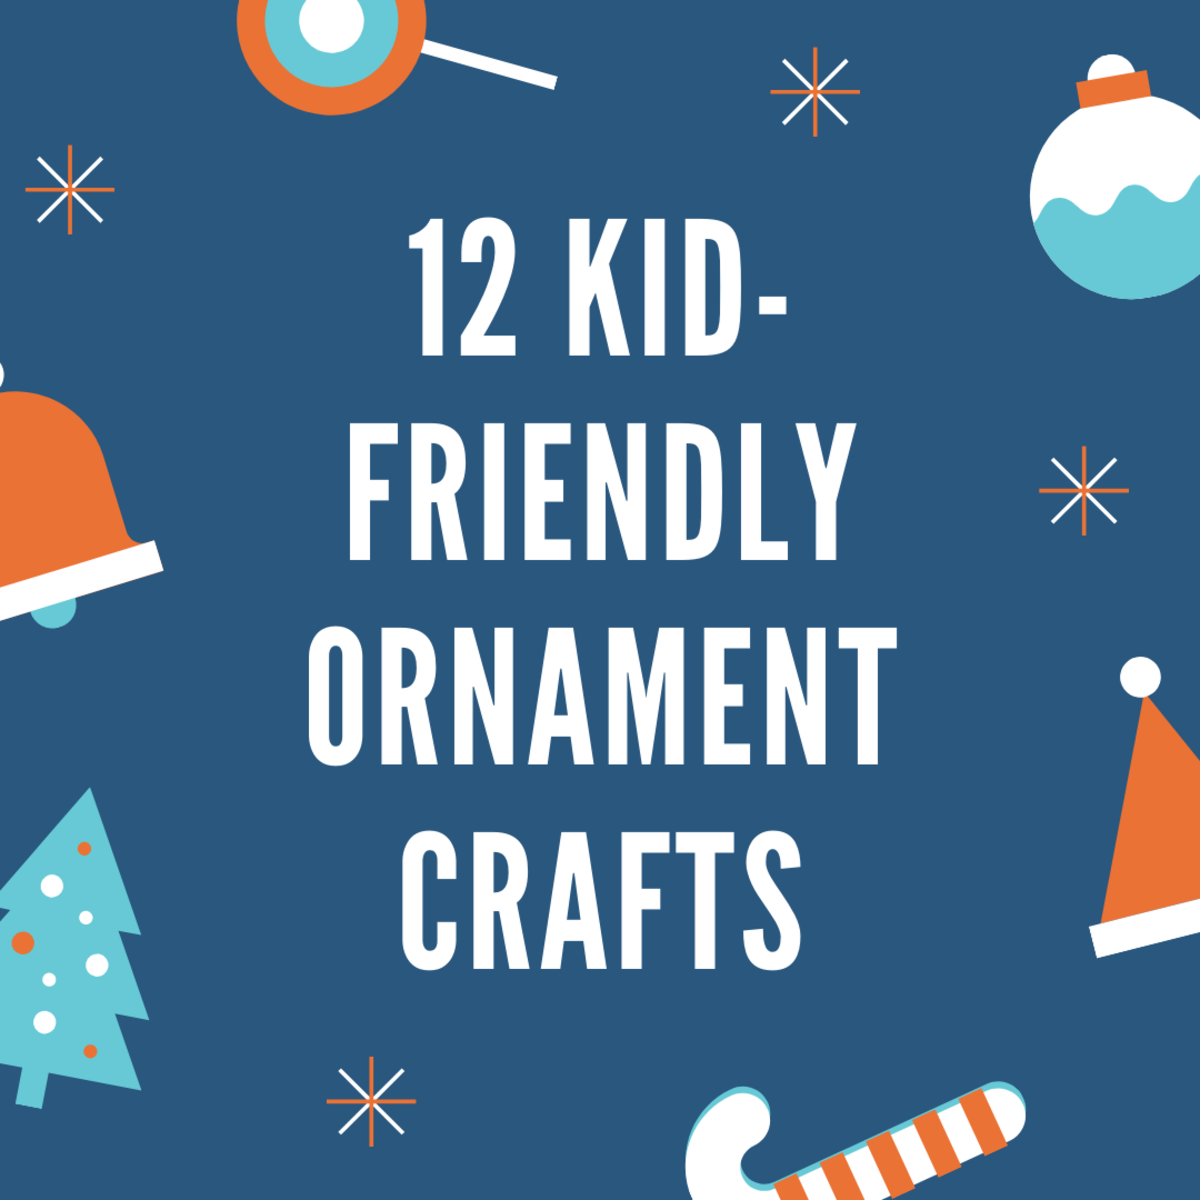 Use common craft supplies to make a dozen decorations for your tree.